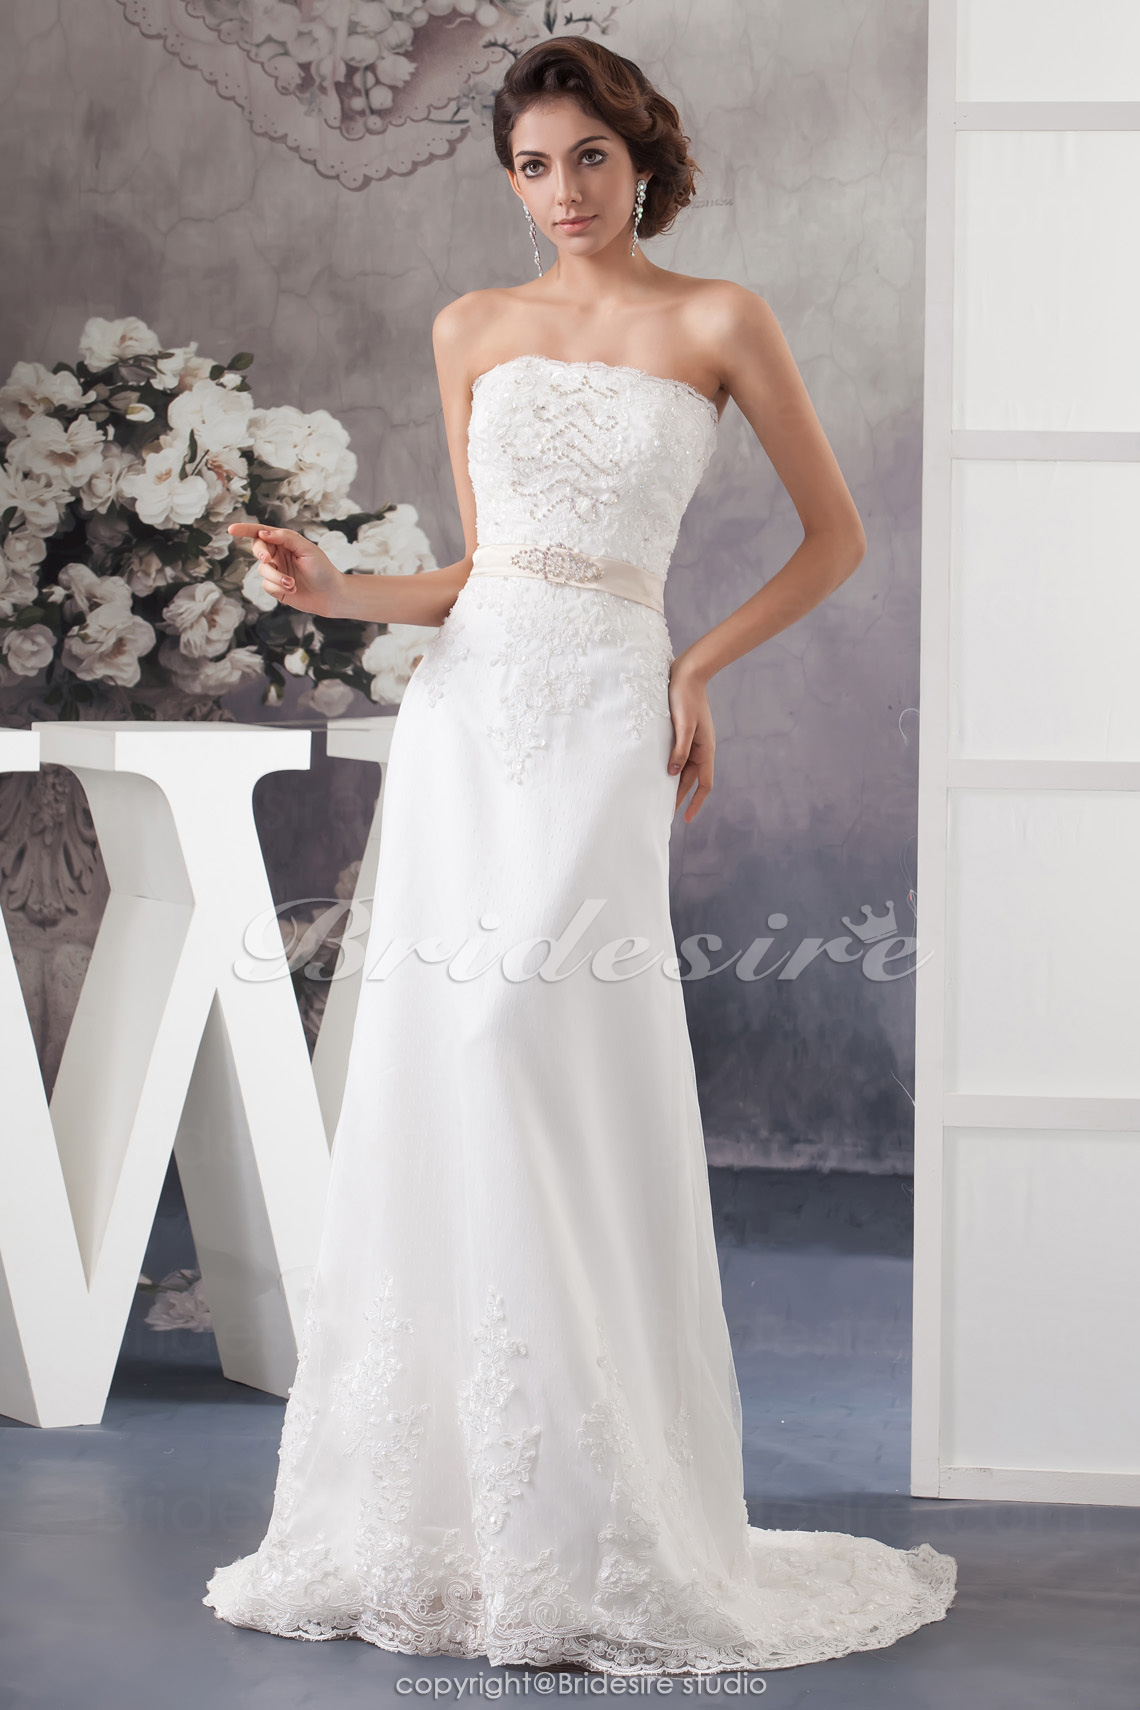 Sheath/Column Strapless Court Train Sleeveless Lace Wedding Dress